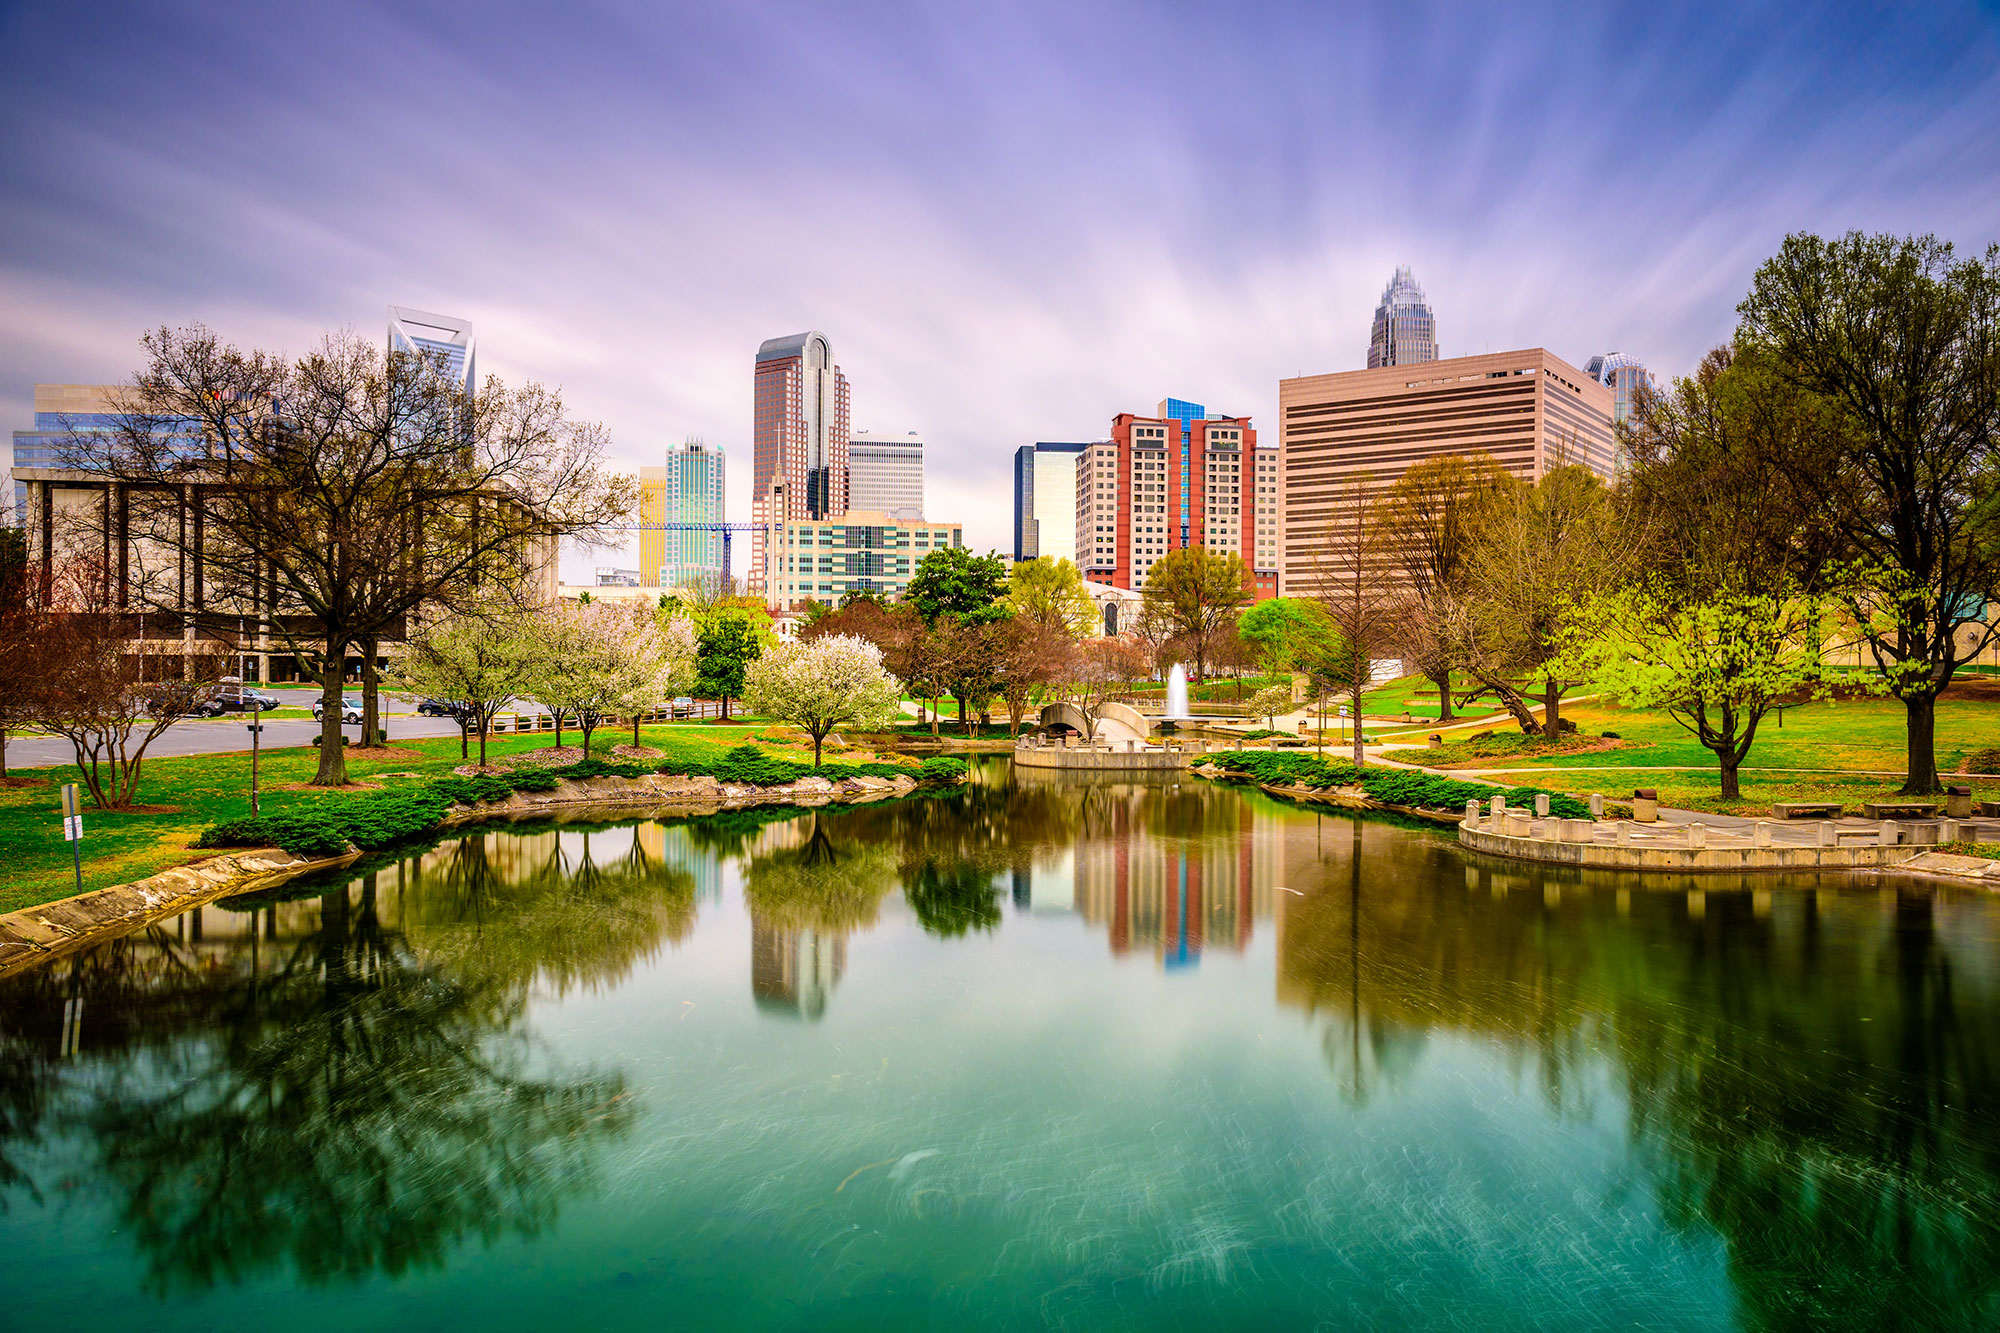 11. Charlotte, North Carolina